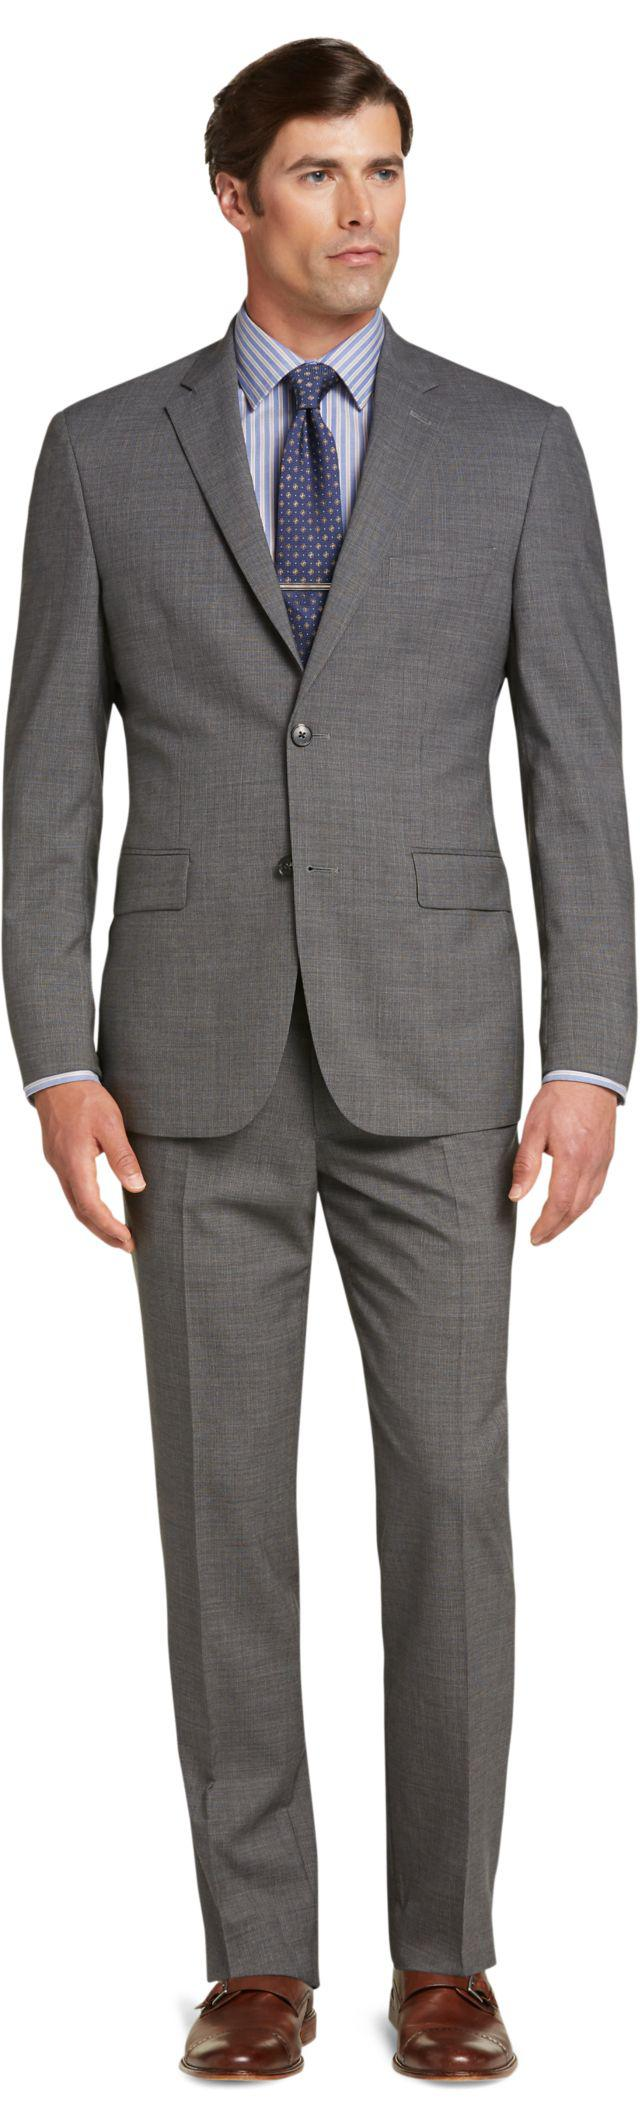 Lyst jos a bank traveler collection tailored fit micro for Jos a bank tailored fit vs slim fit shirts